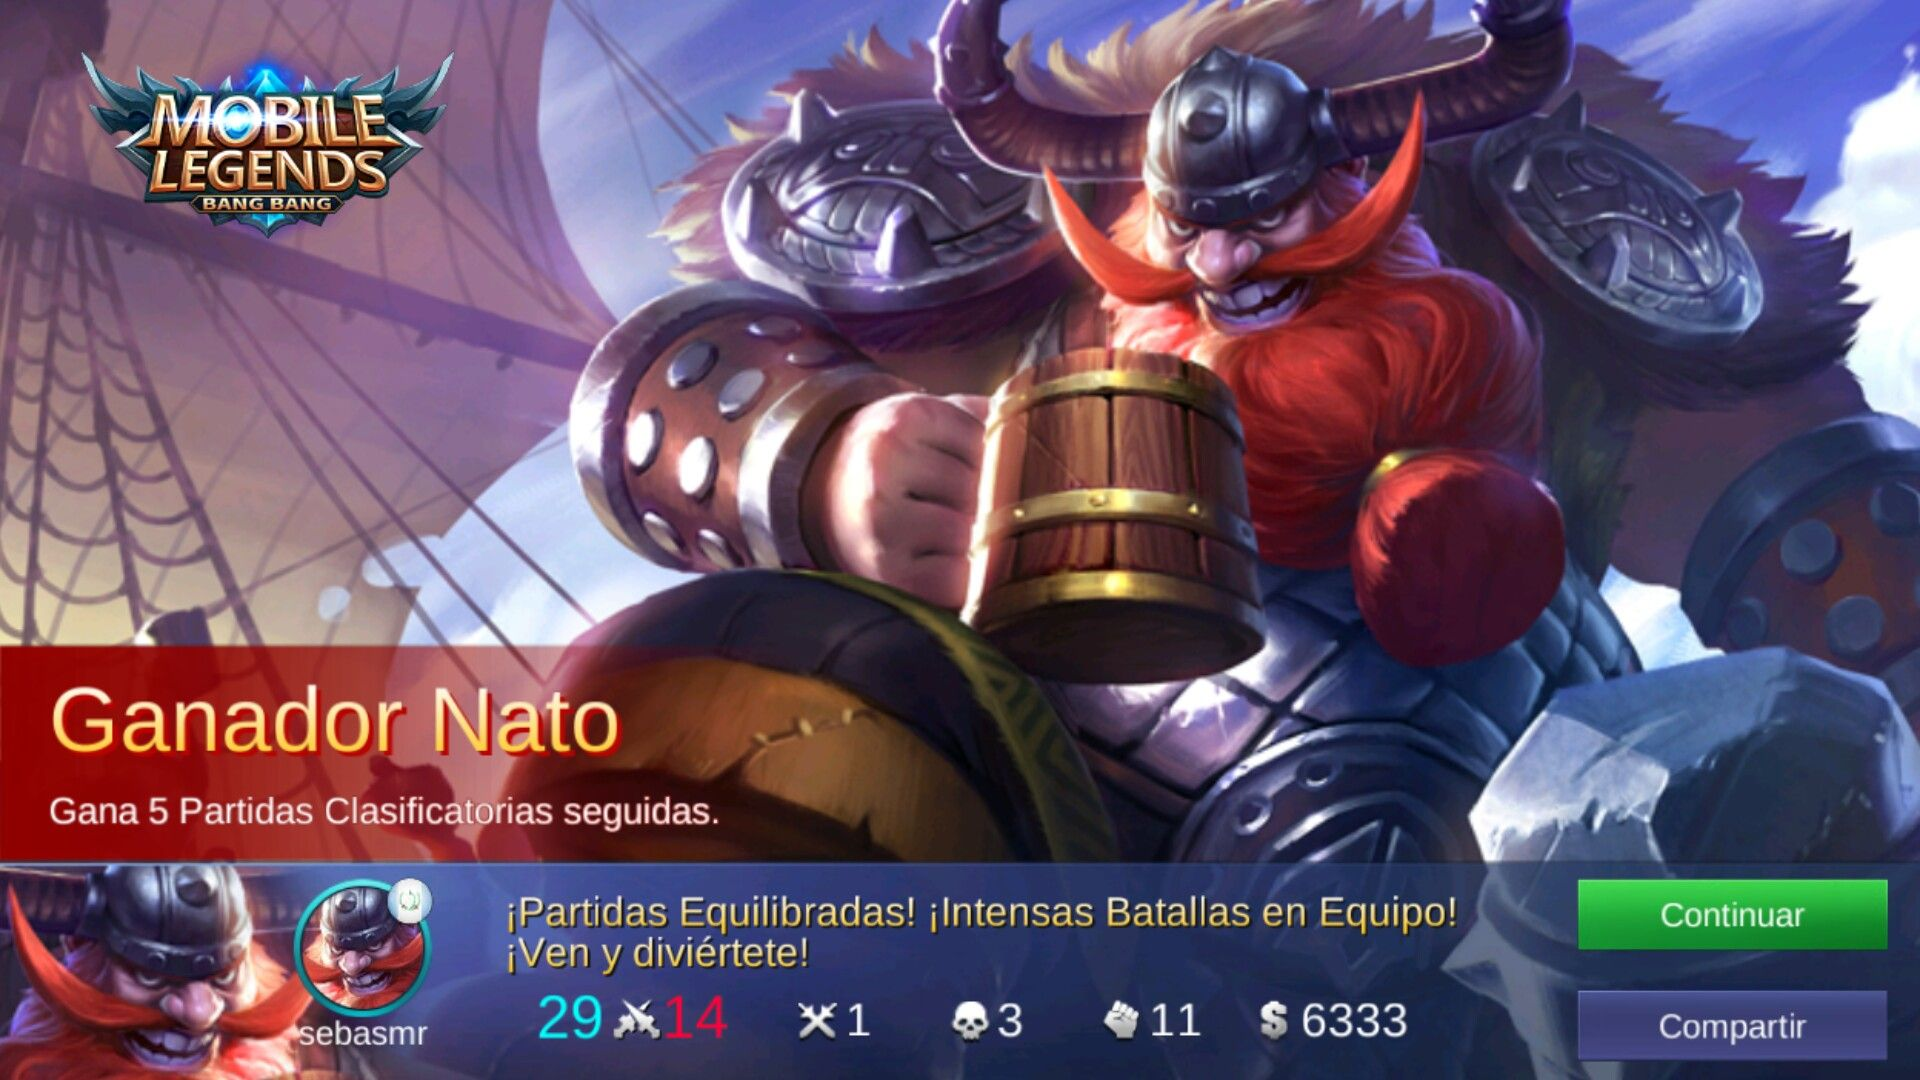 find this pin and more on mobile legends by sebas 13m